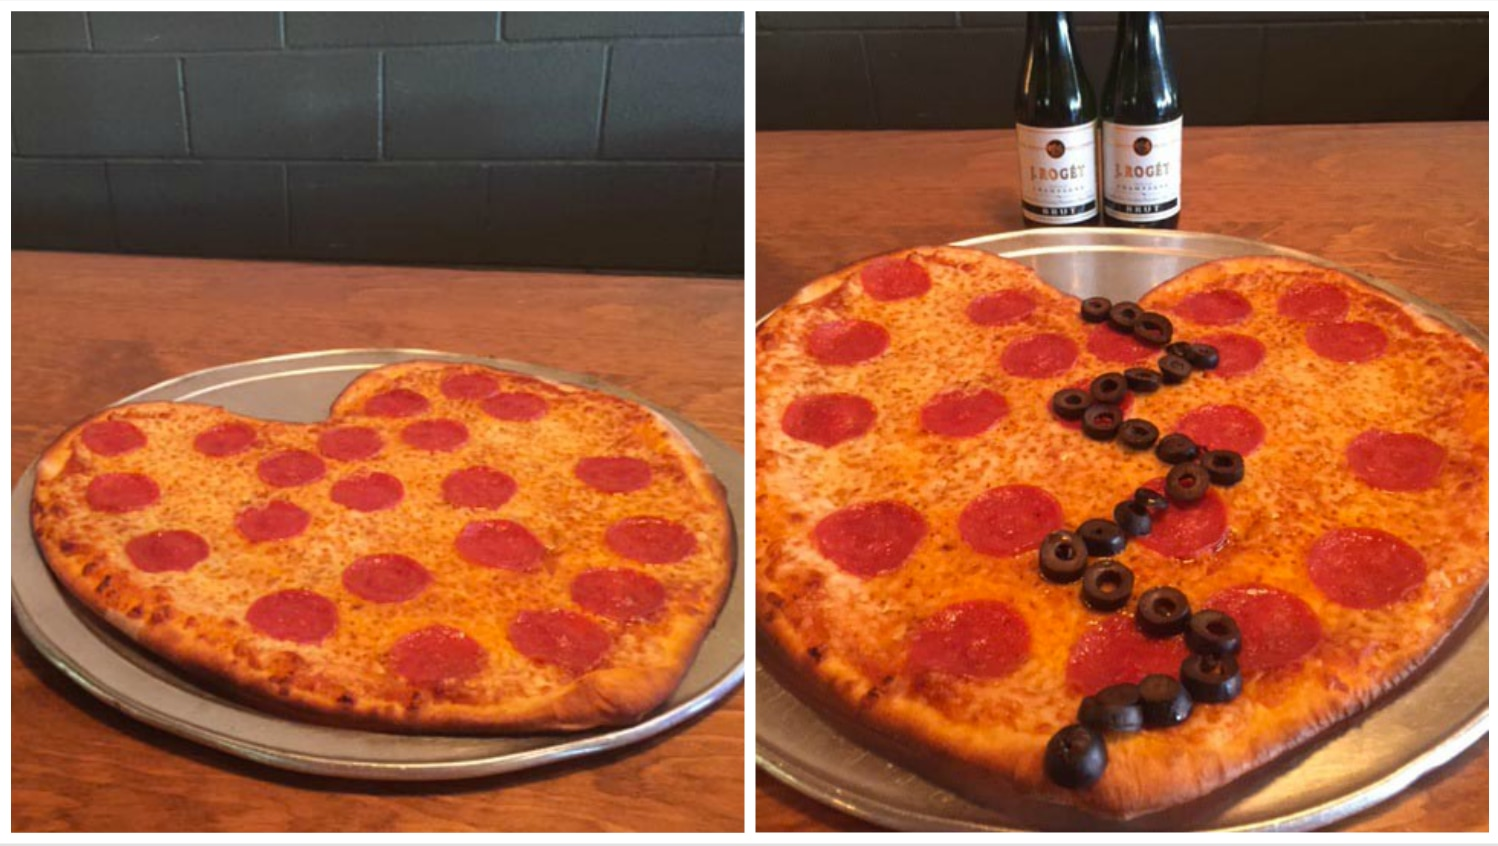 Couples, your pizza is on the left. Singles, to the right.